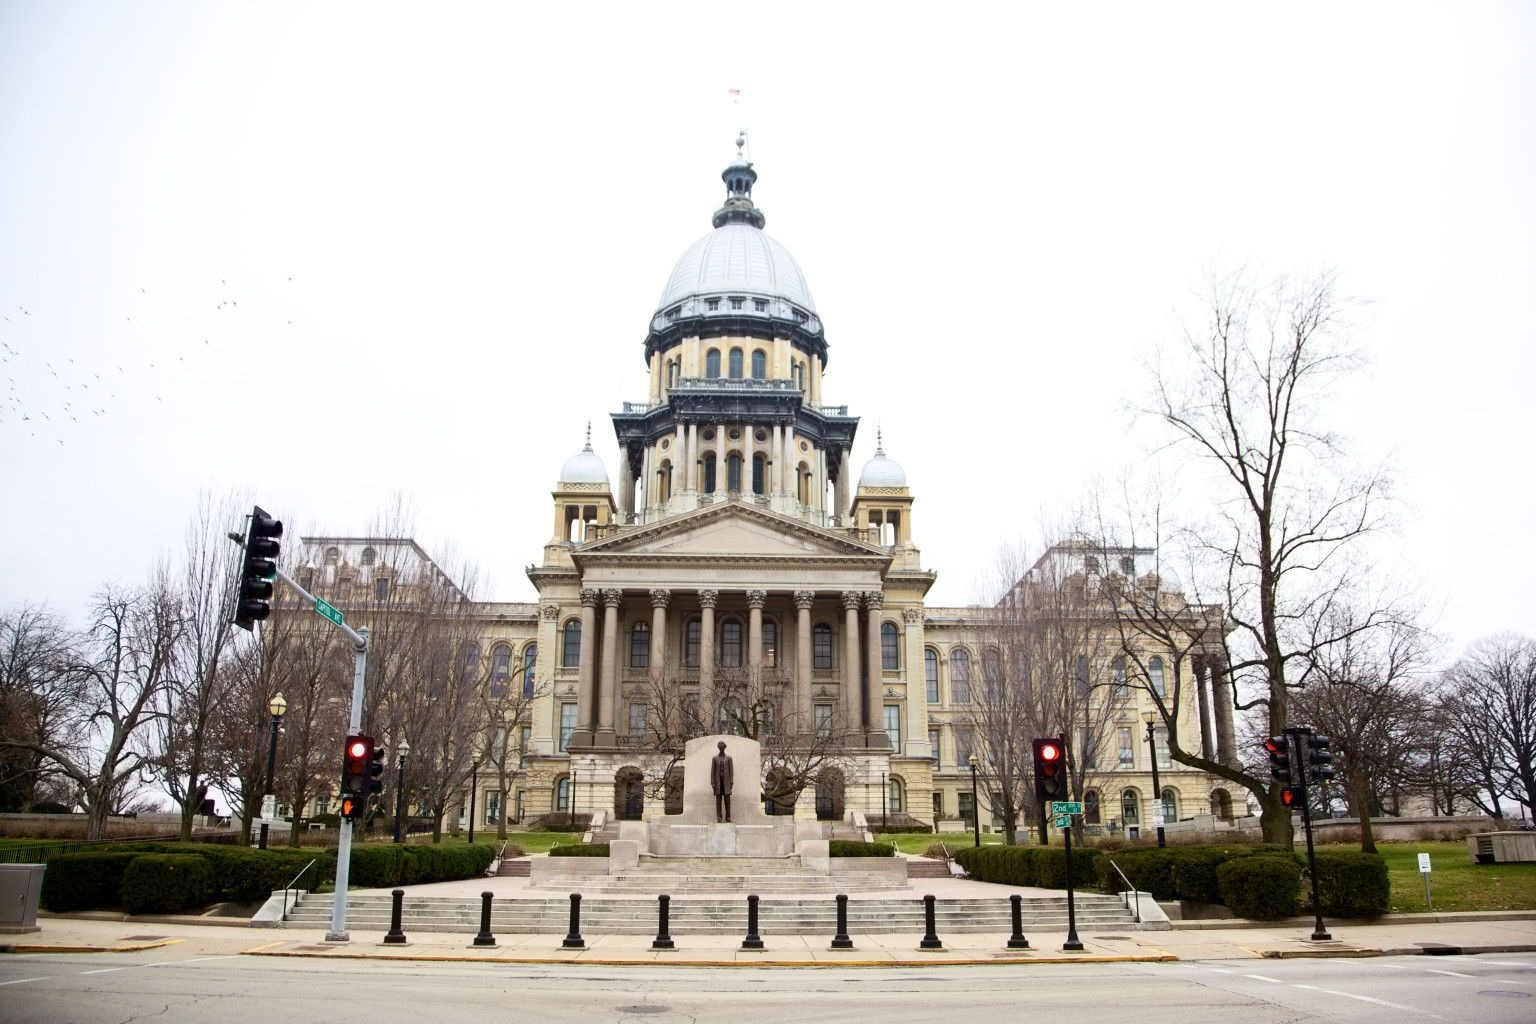 Gov. Bruce Rauner on Friday vetoed an Illinois Senate bill affecting 911 service.